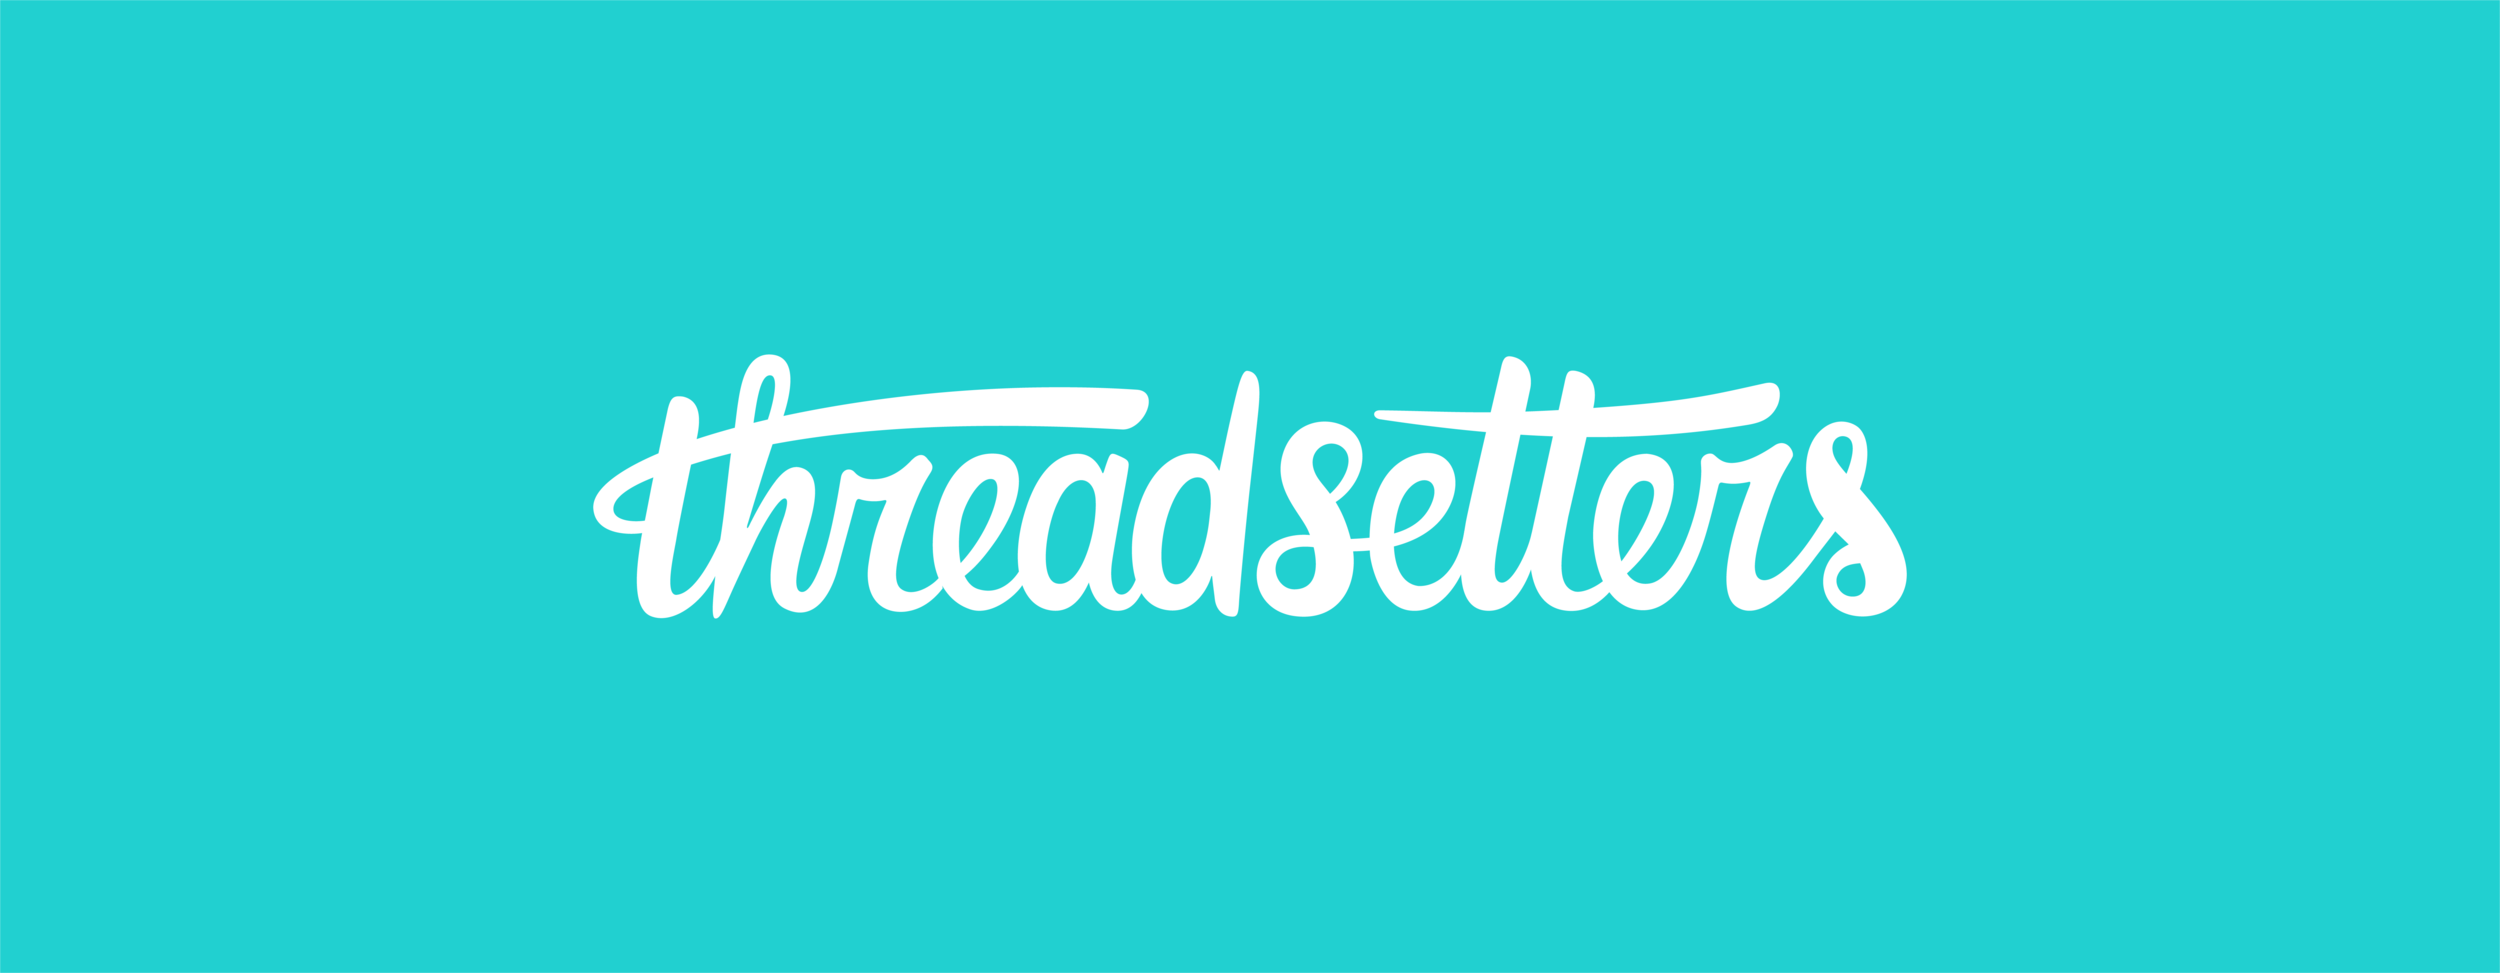 Threadsetters (2014)